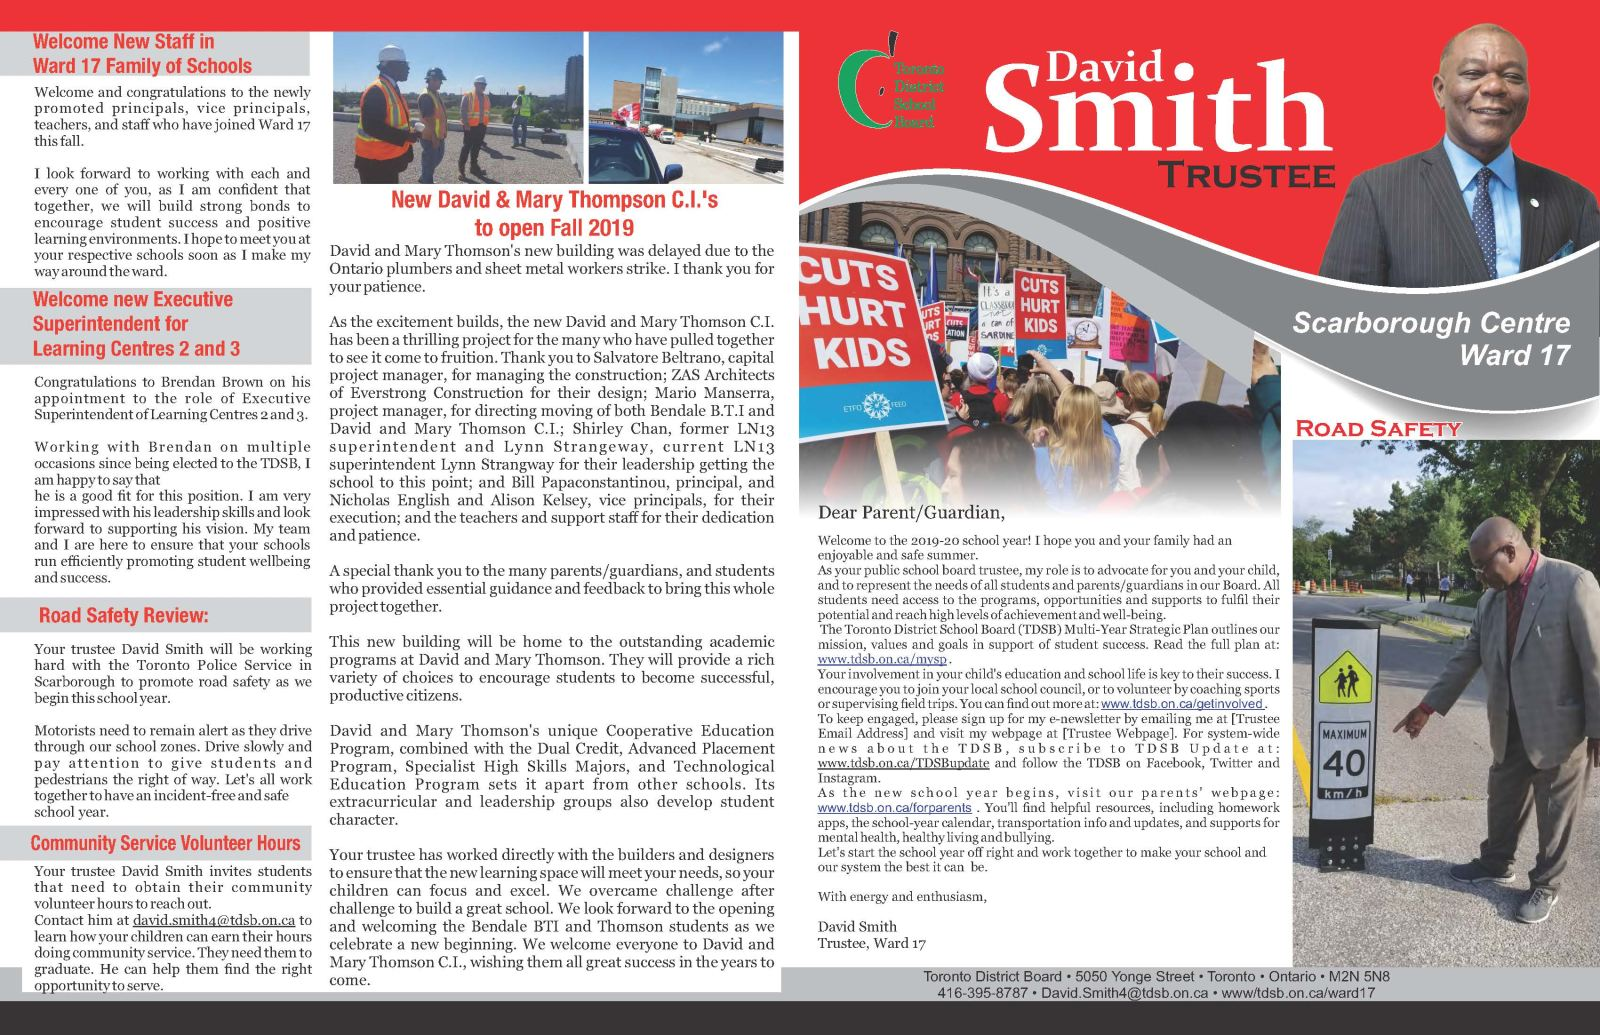 Image of page 1 of Trustee David Smith's Fall 2019 Newsletter